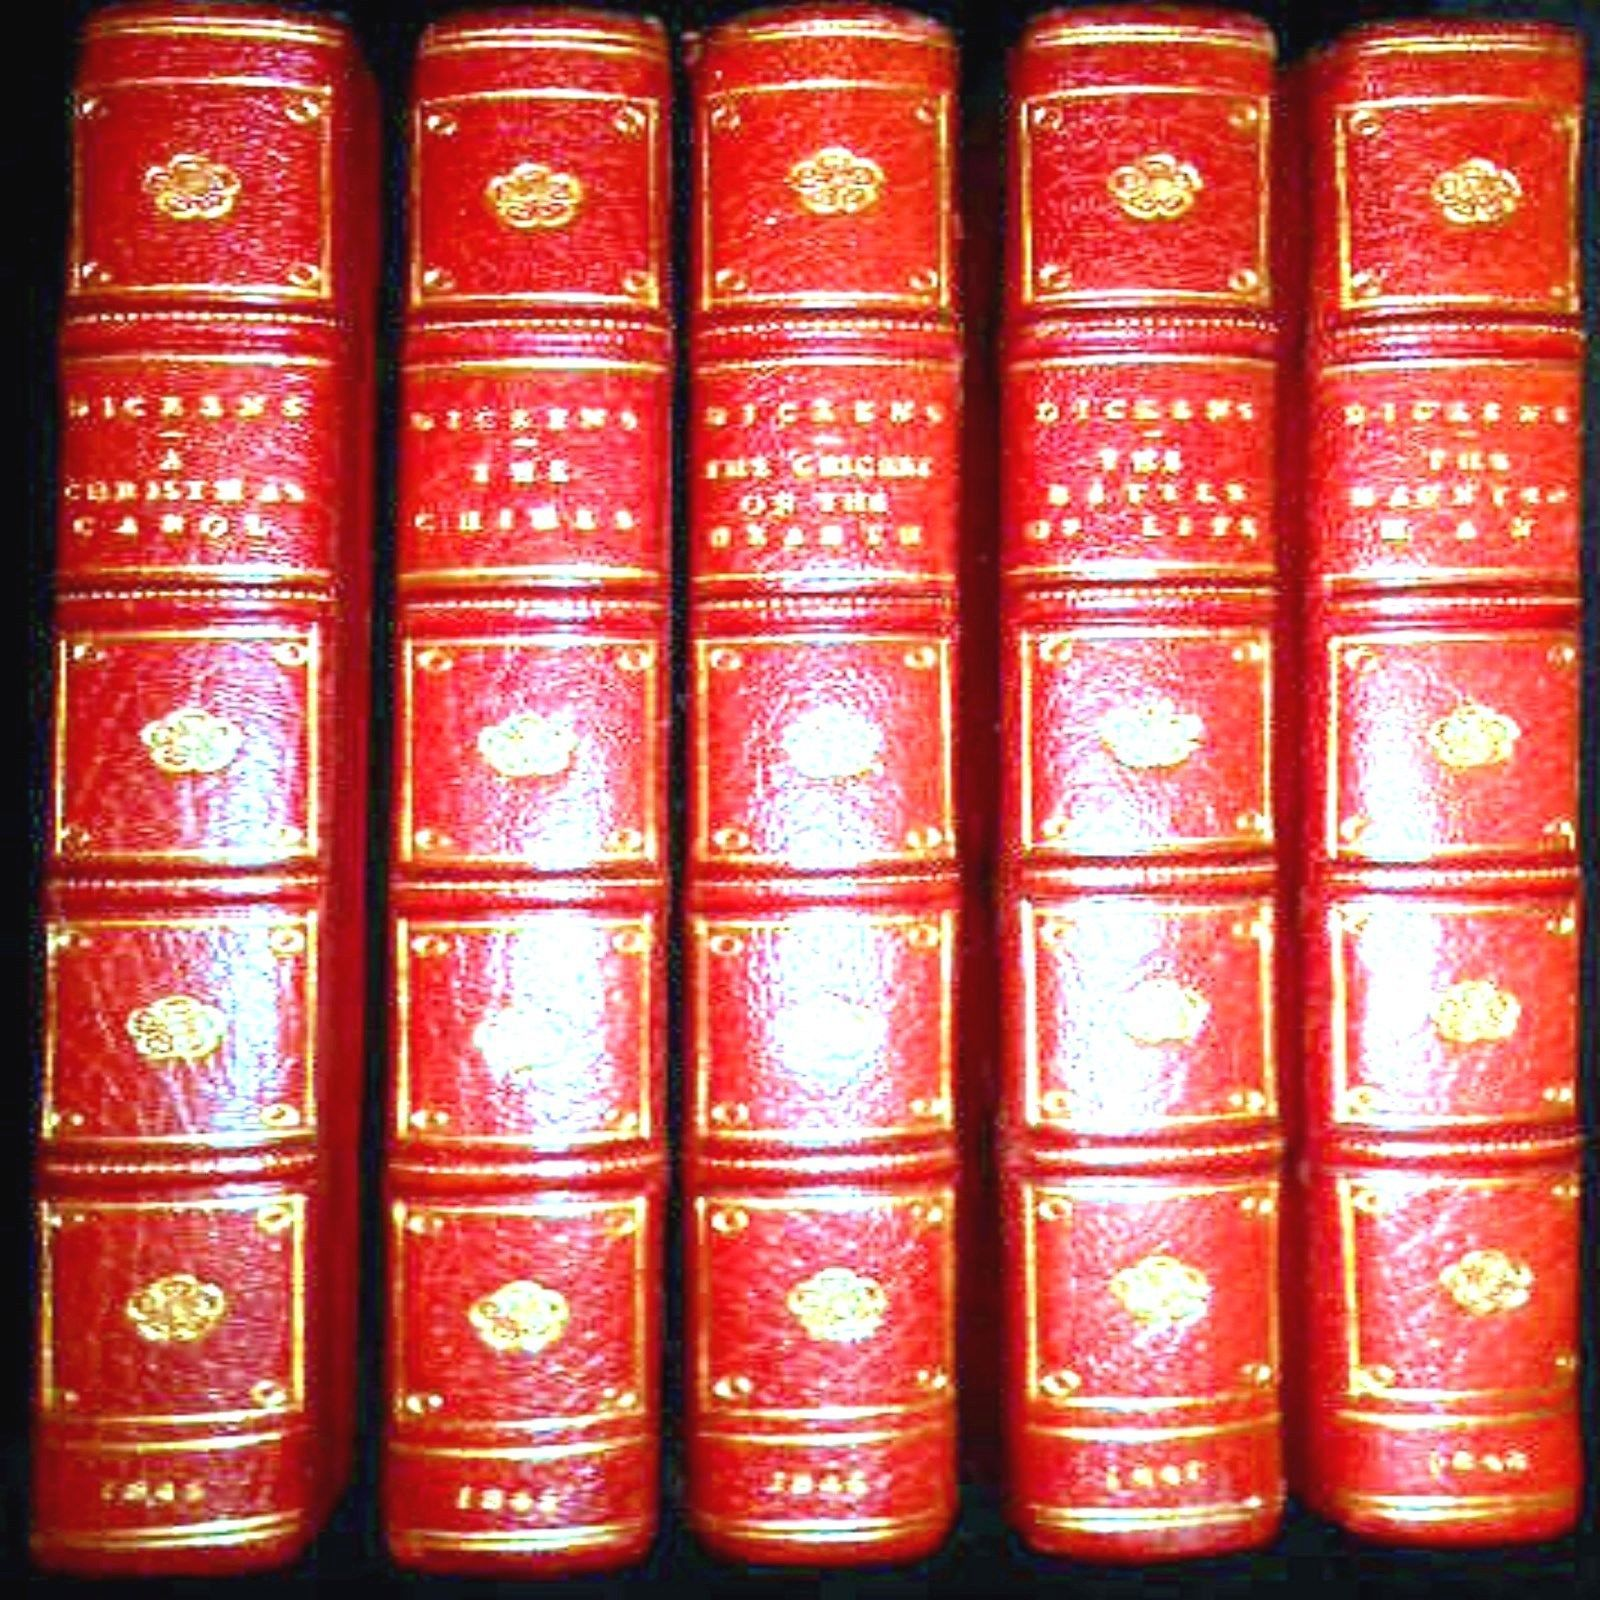 1843 CHRISTMAS BOOKS A CHRISTMAS CAROL CHARLES DICKENS 1ST EDITION 1ST ISSUE 5 BOOKS SET ...